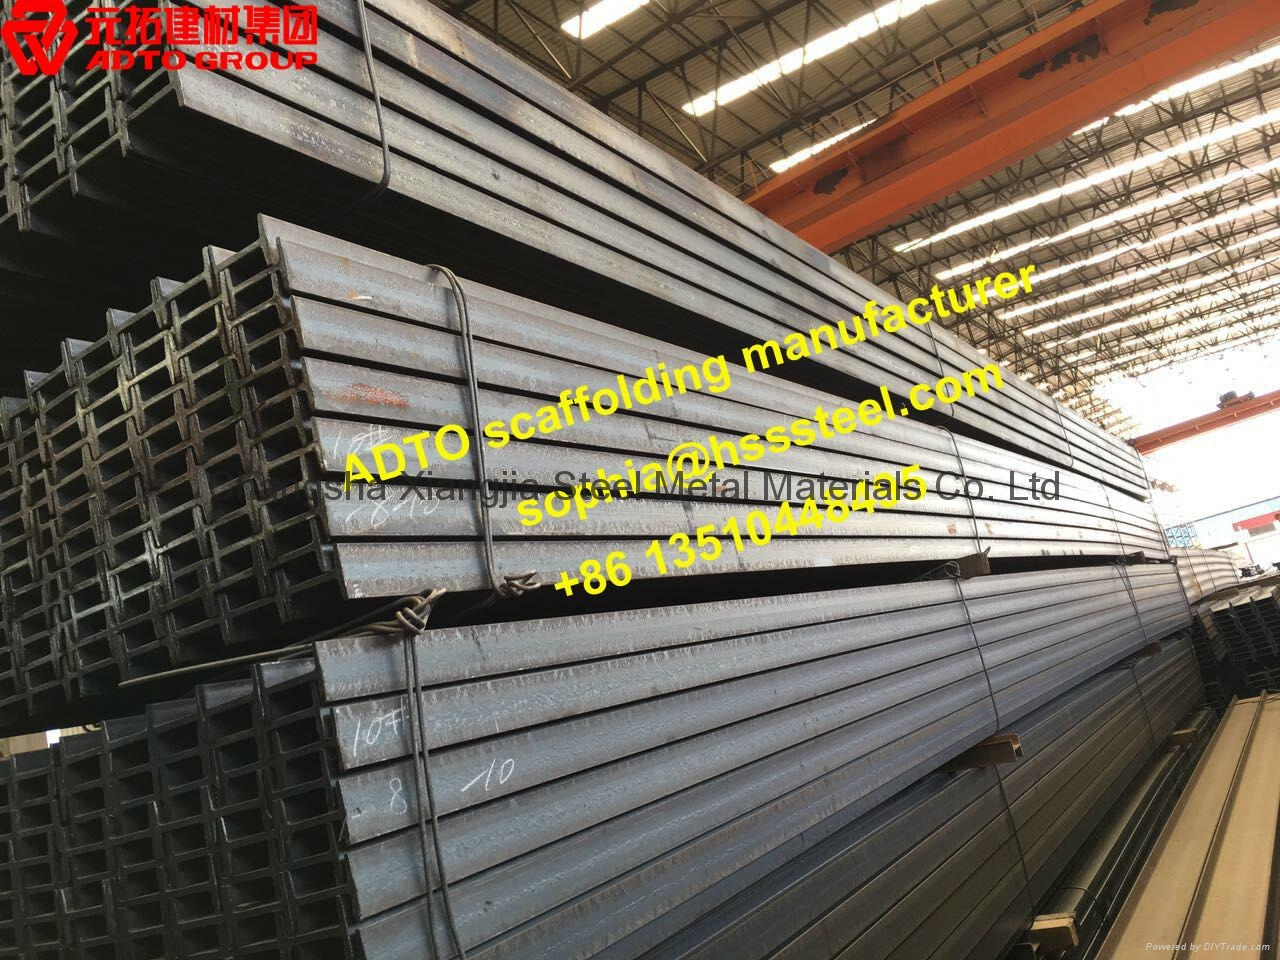 Steel I H Beam 10' for Sidewalk shed Scaffolding System 1